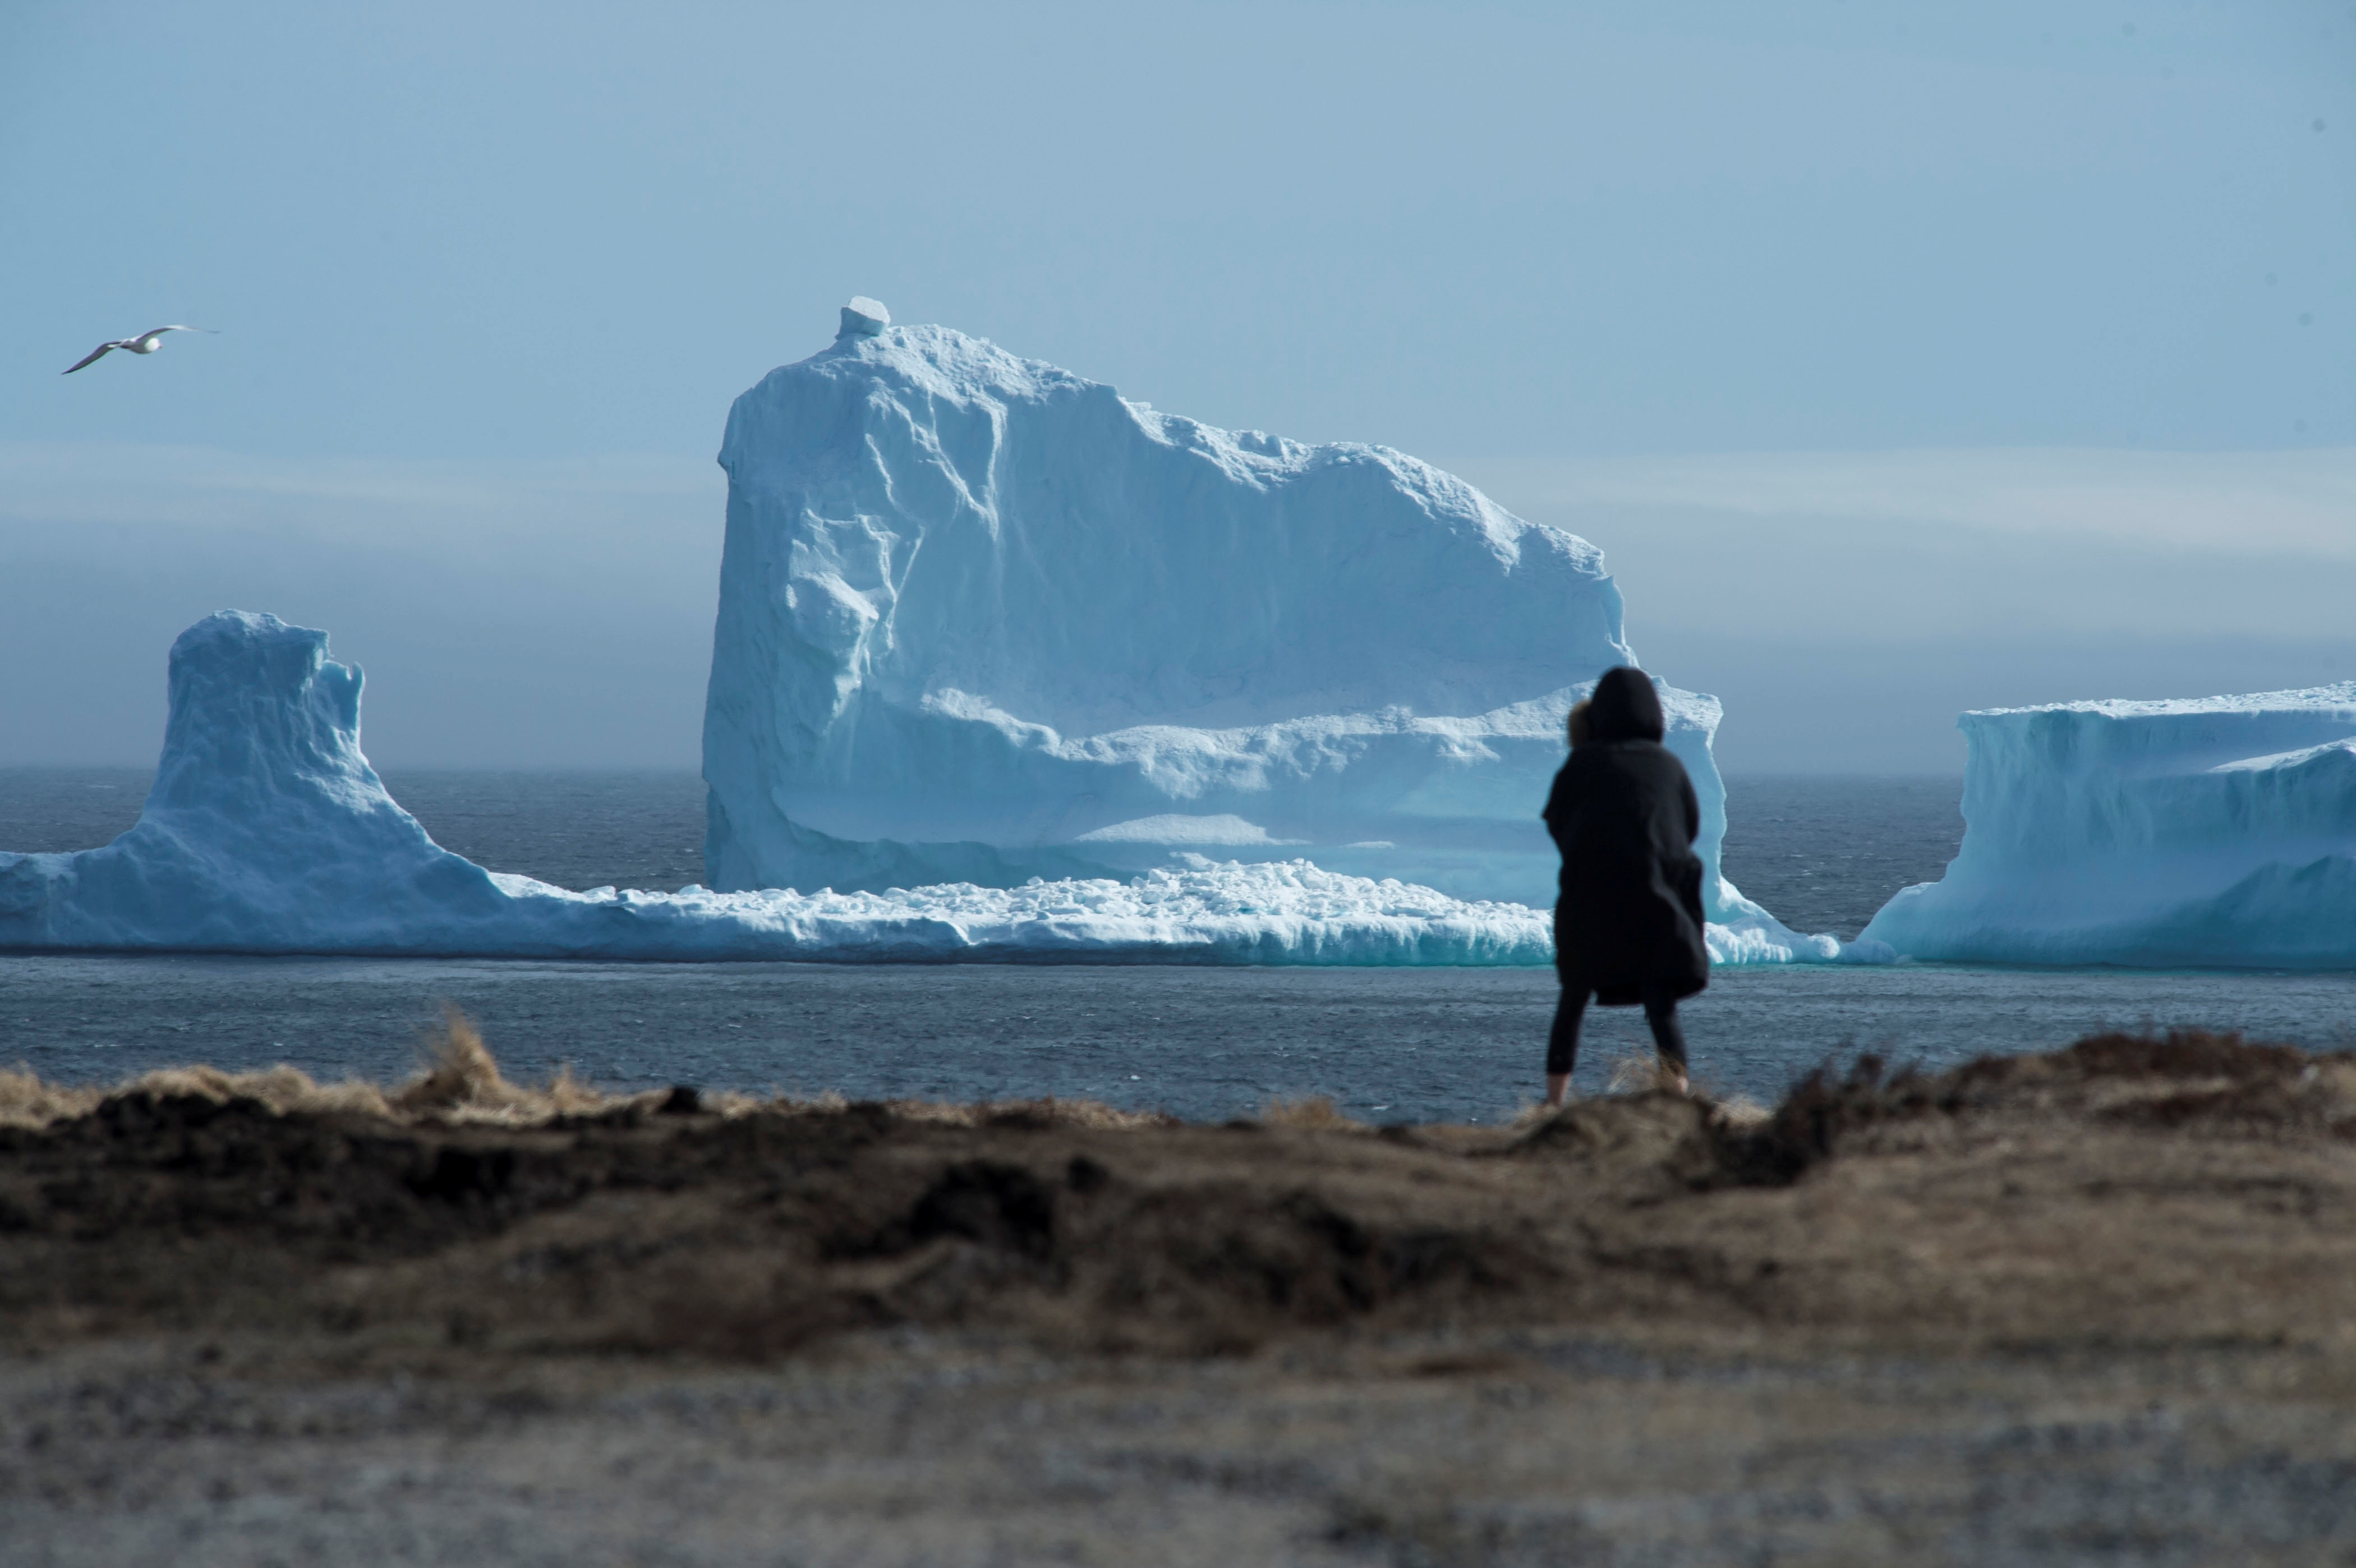 """A resident views the first iceberg of the season as it passes the South Shore, also known as """"Iceberg Alley"""", near Ferryland Newfoundland, Canada April 16, 2017."""